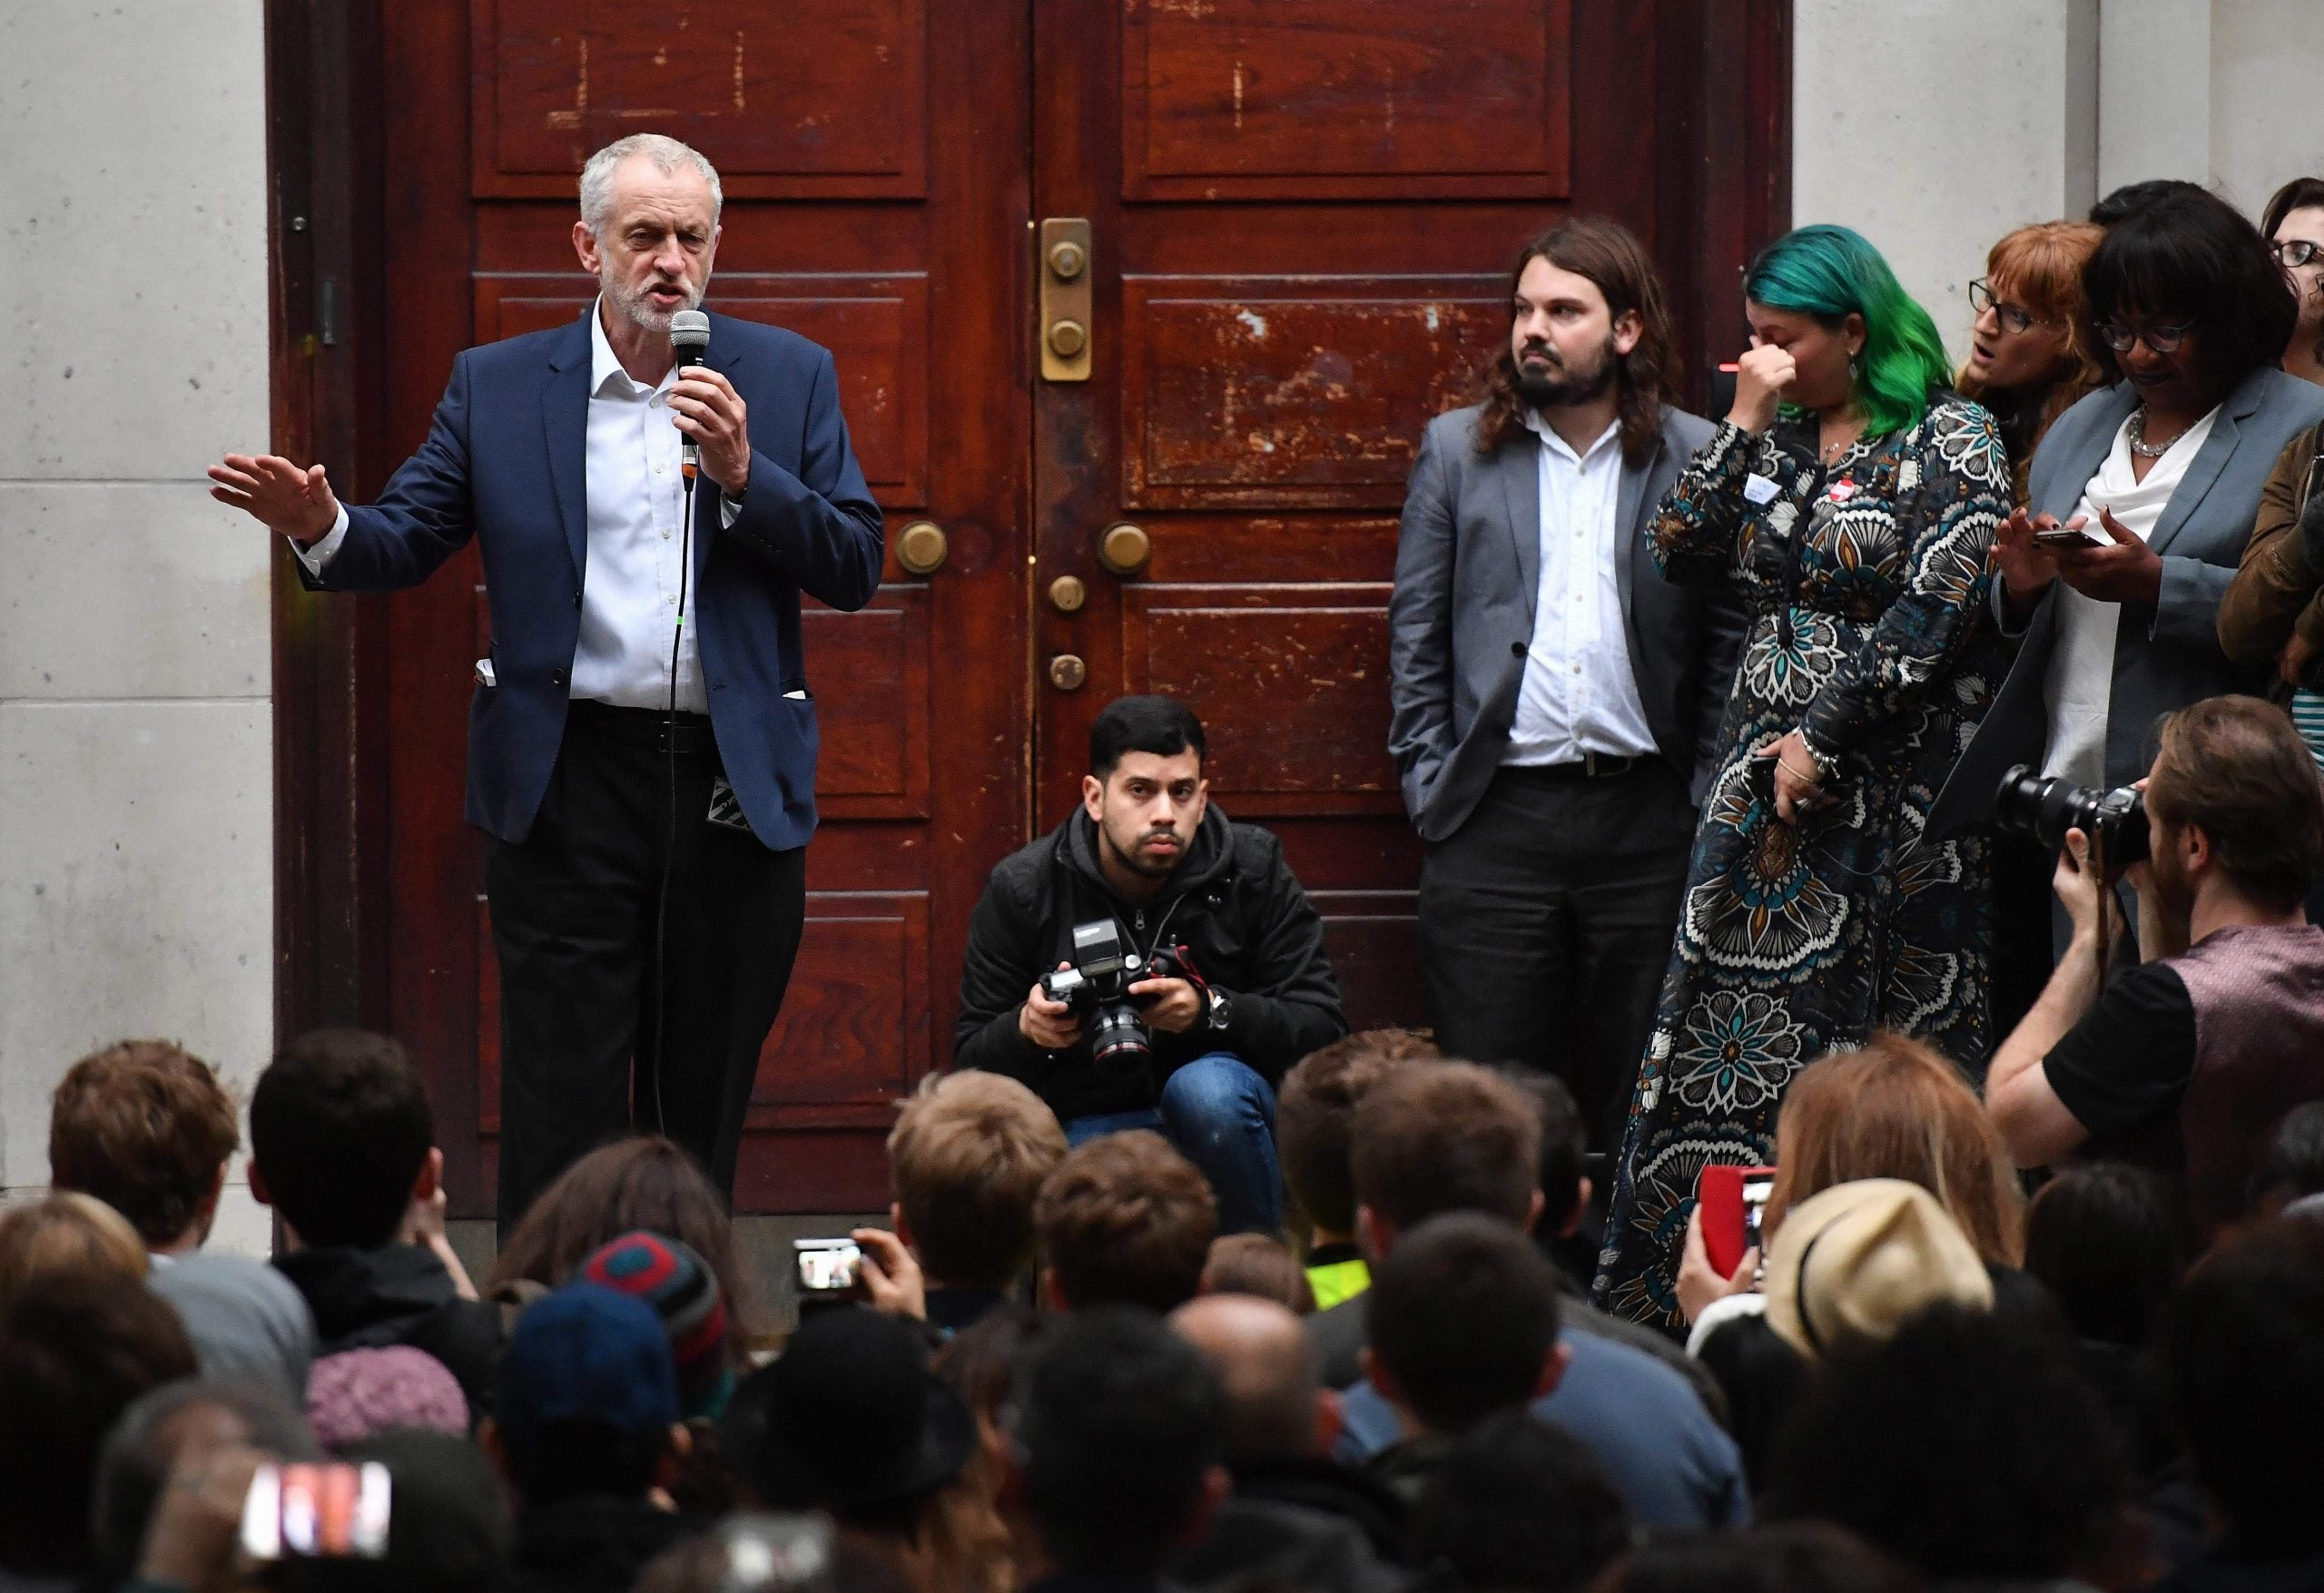 Jeremy Corbyn fights to the last in the war both sides knew would come